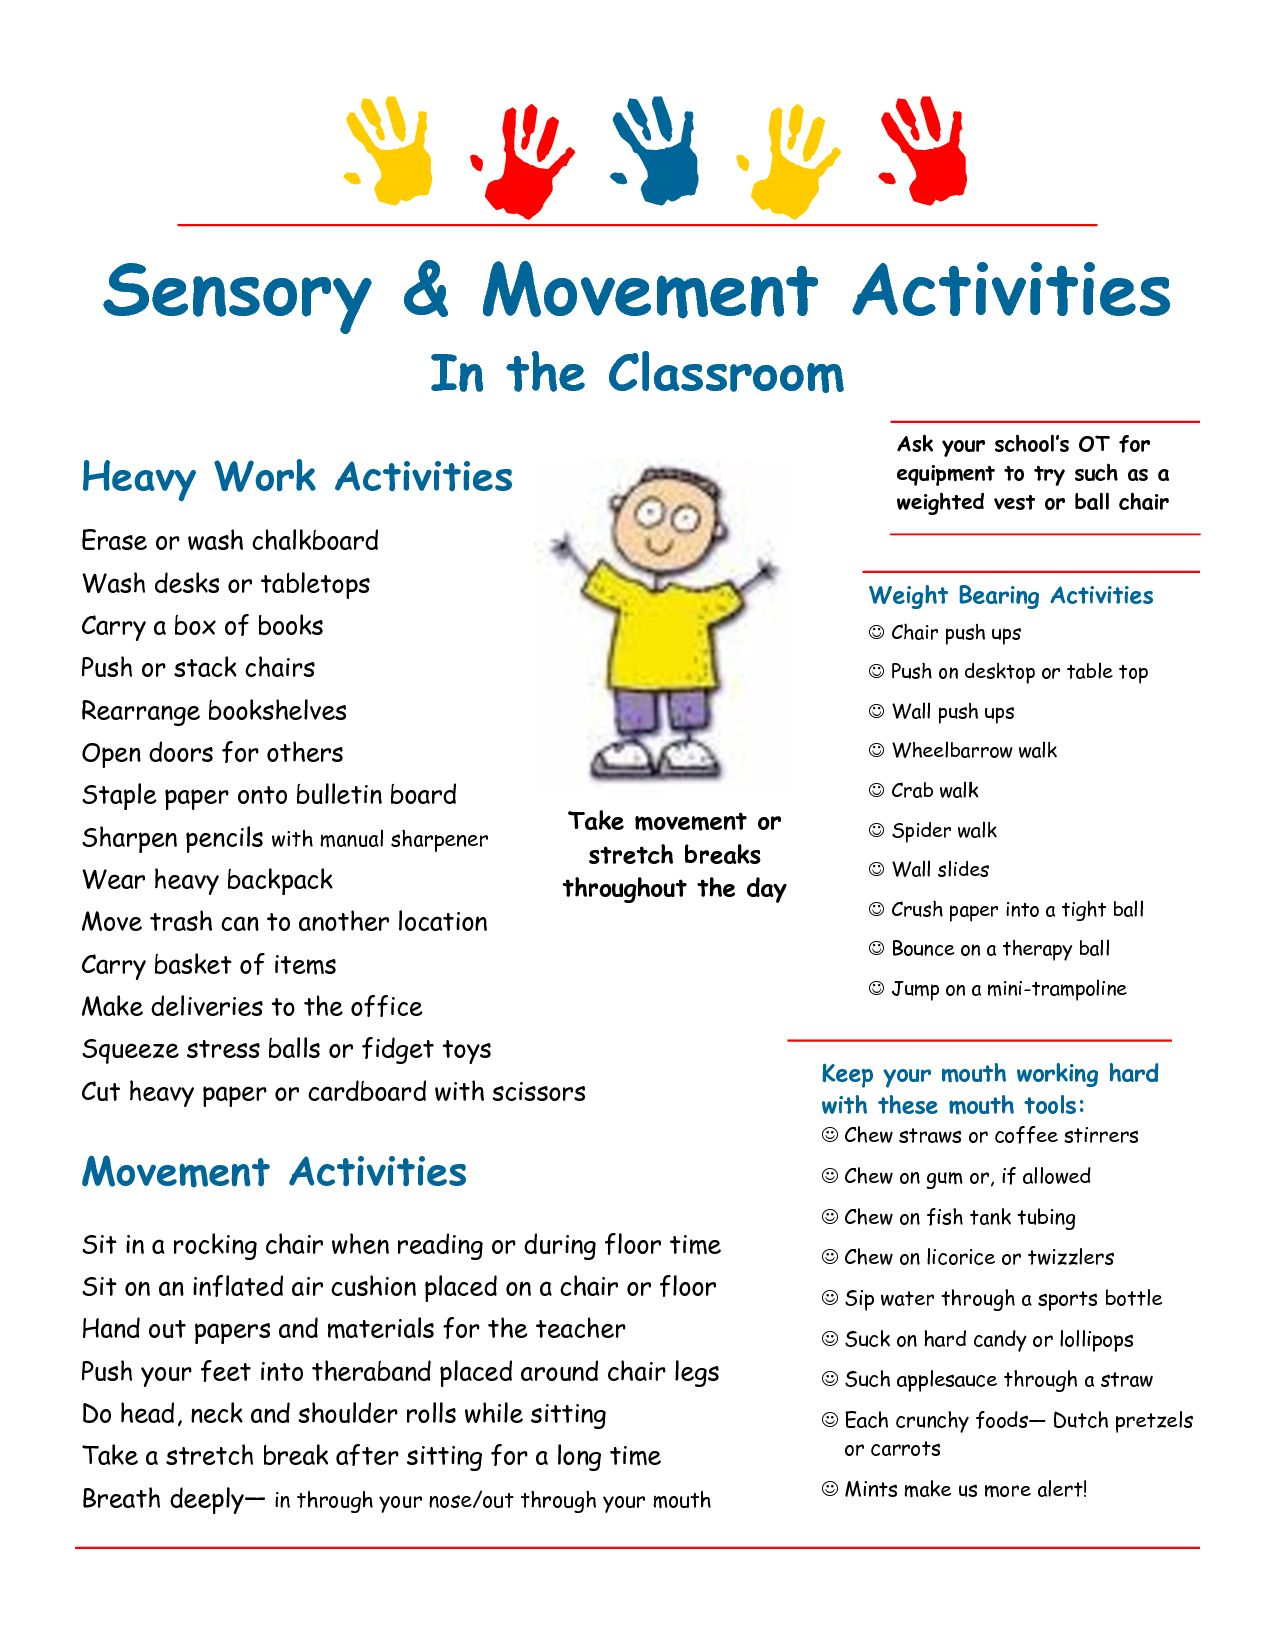 Sensory strategies & heavy work suggestions for the classroom ...